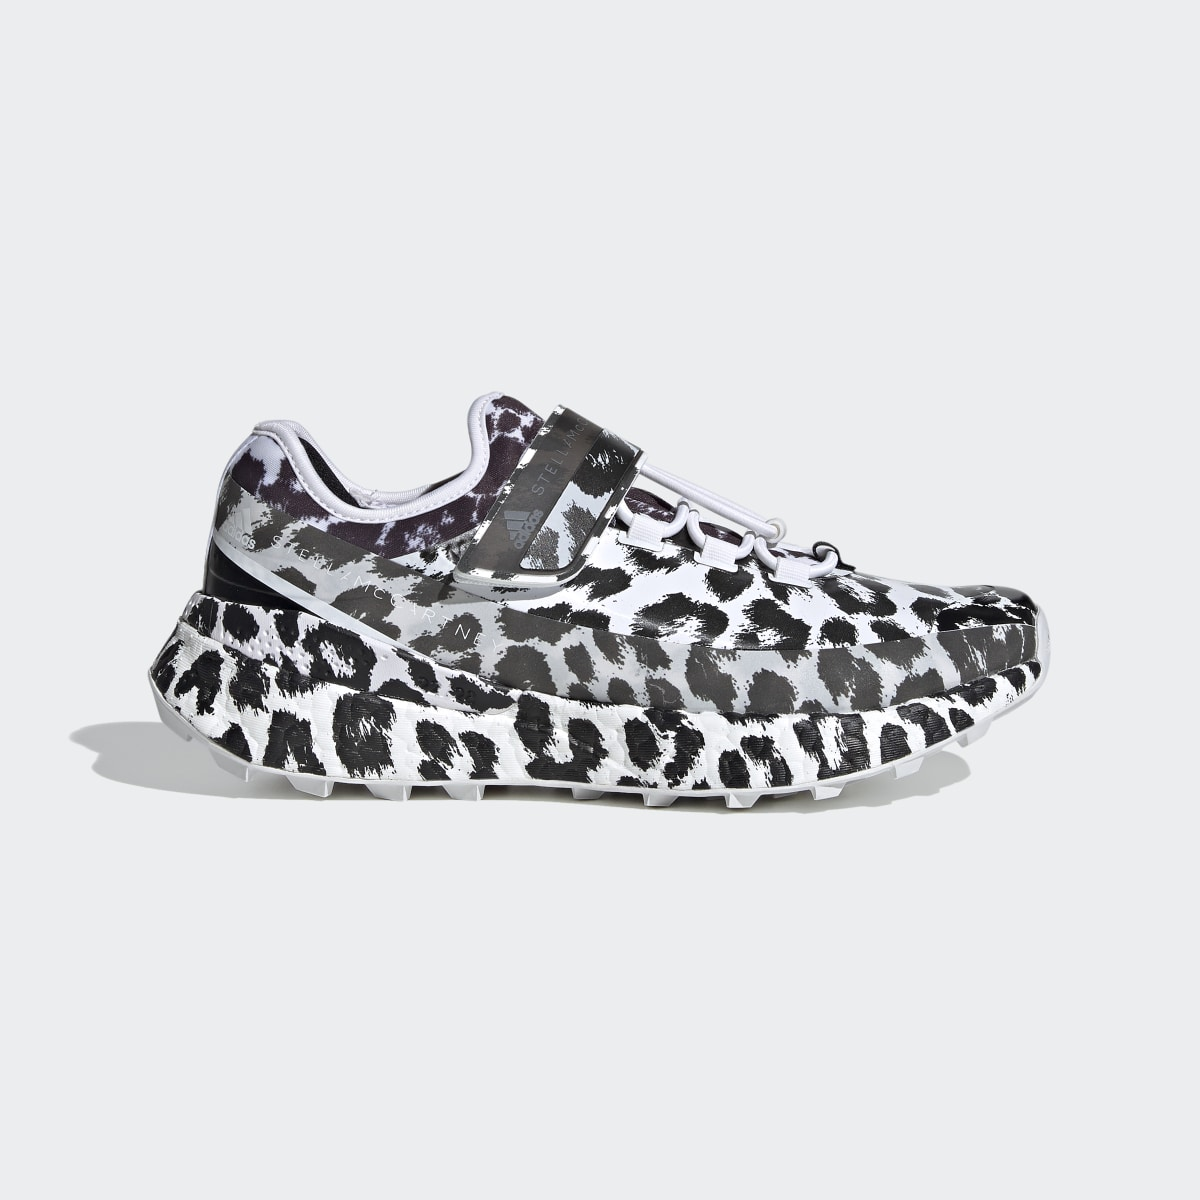 adidas by Stella McCartney Outdoor Boost Shoe